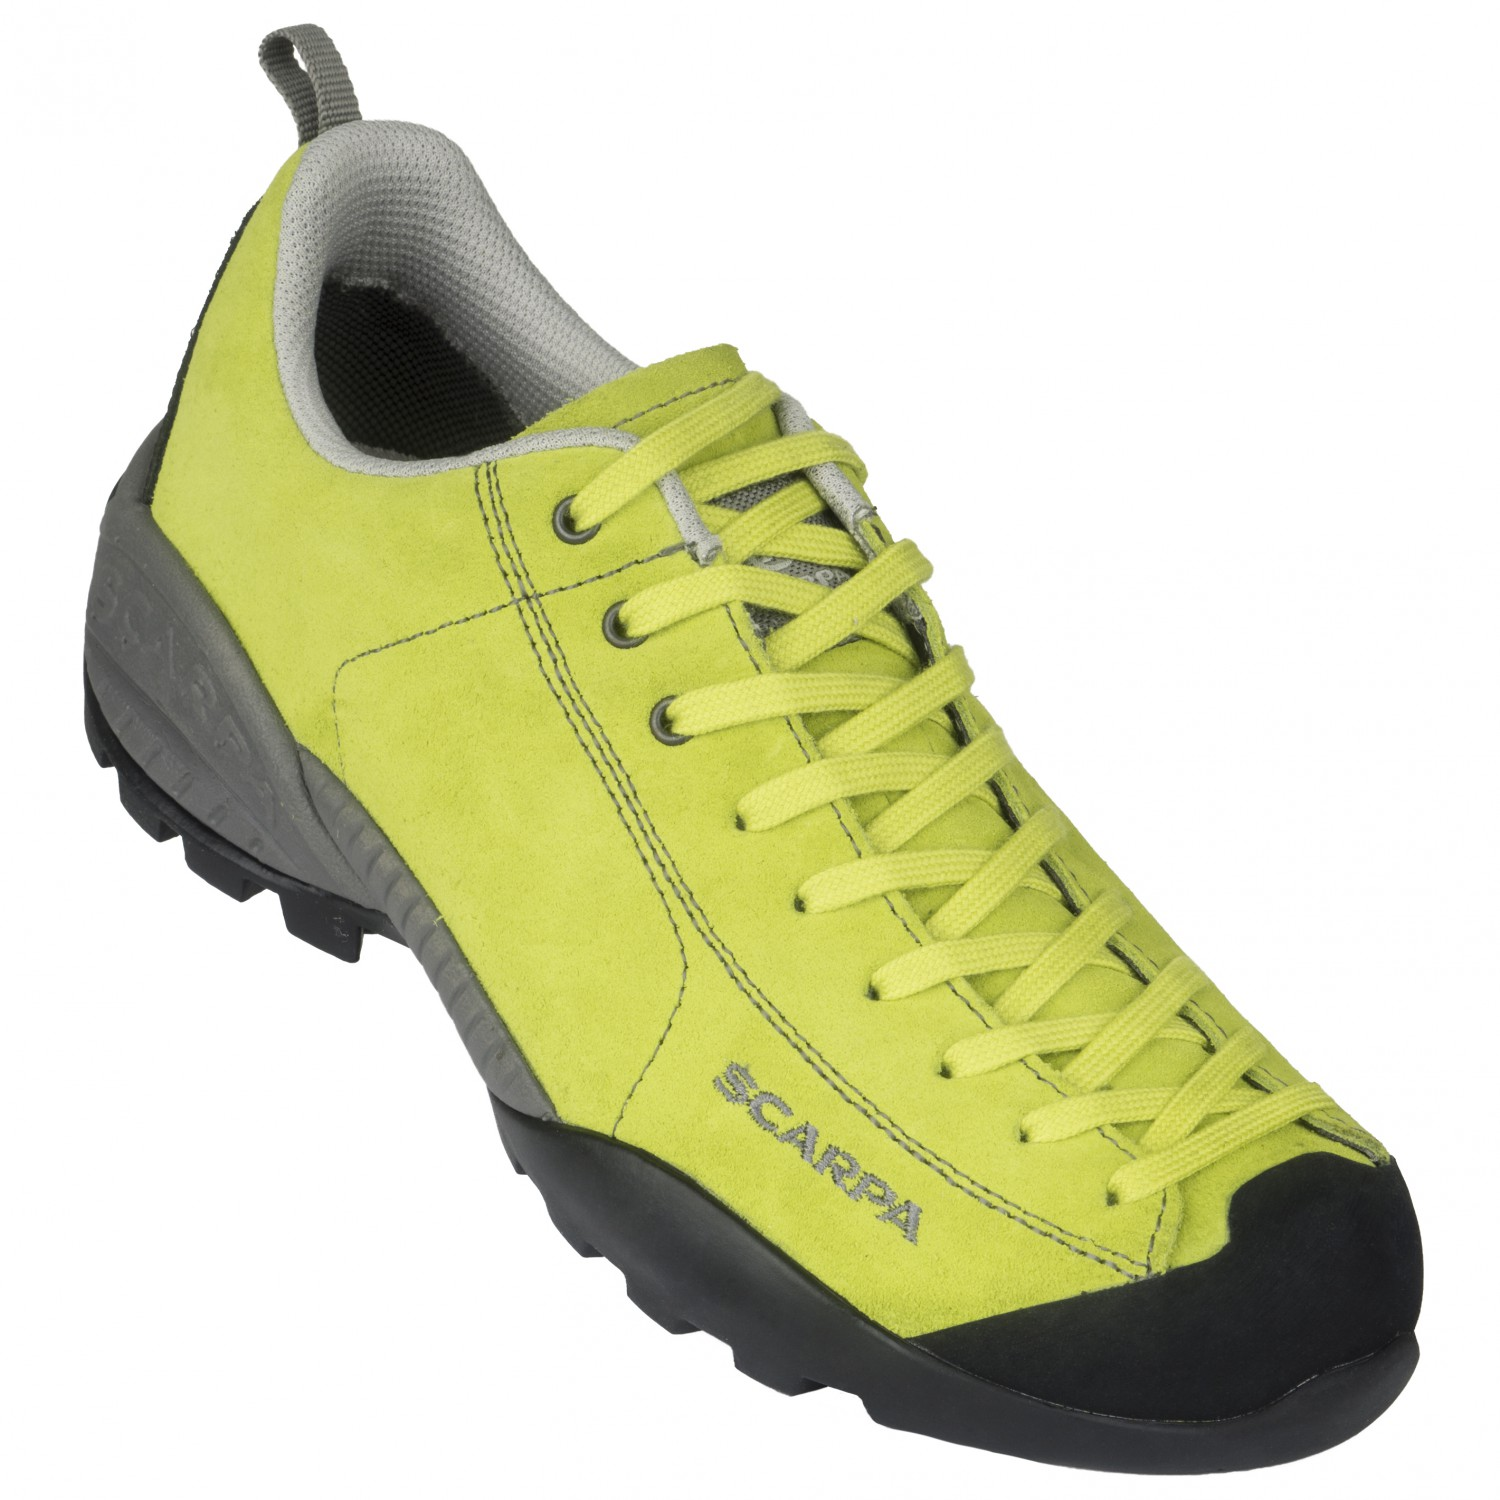 purchase cheap outlet store online for sale Scarpa Mojito GTX - Sneakers | Free EU Delivery | Bergfreunde.eu